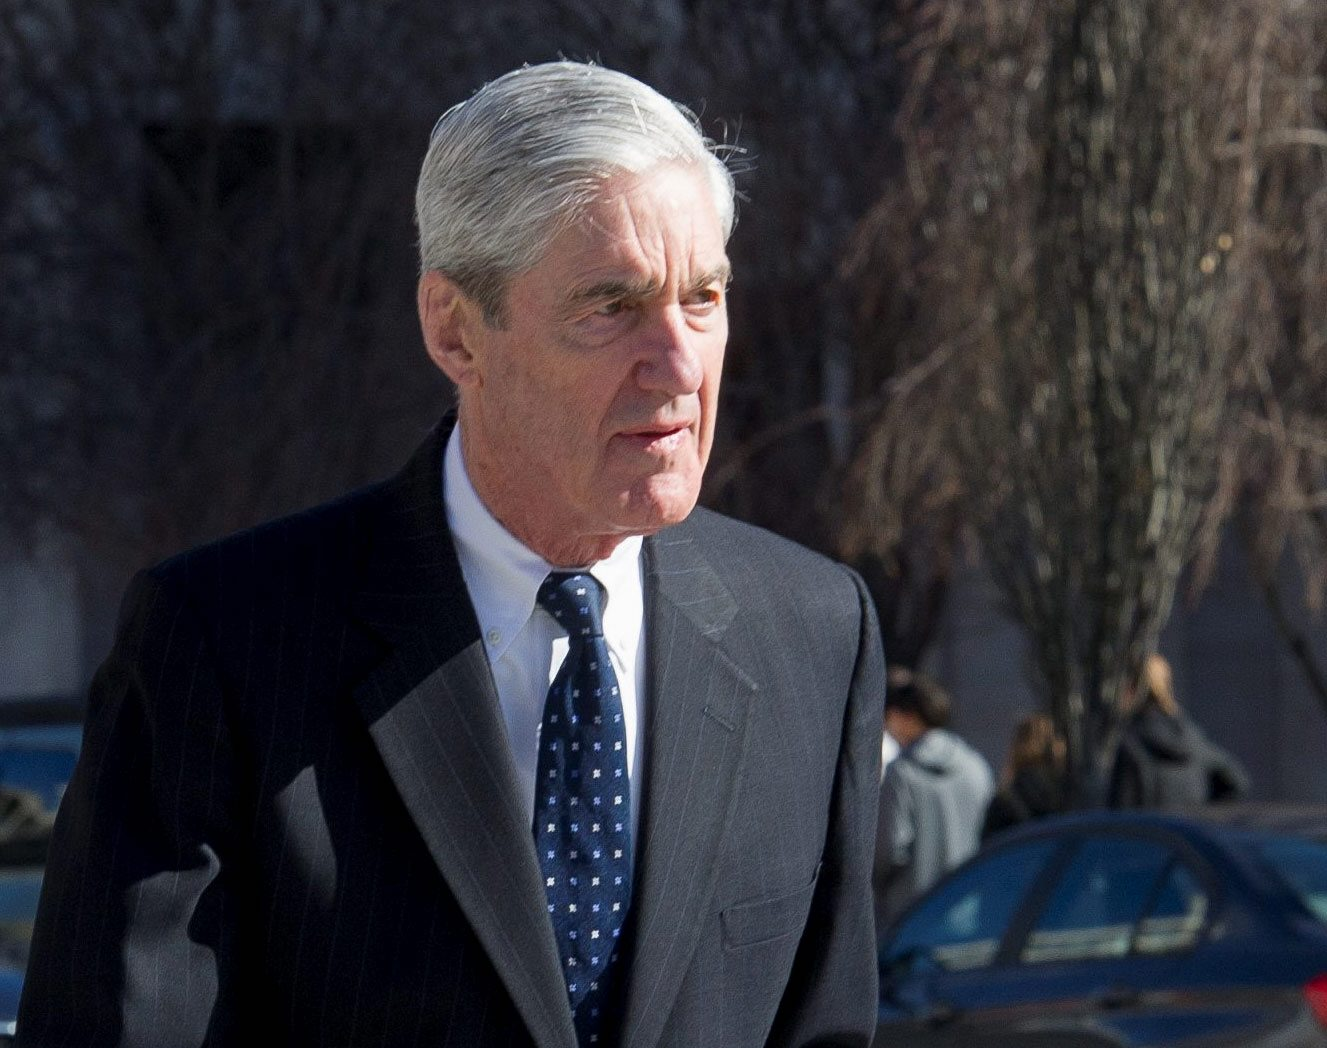 Mueller's team reluctant to have him testify: Report